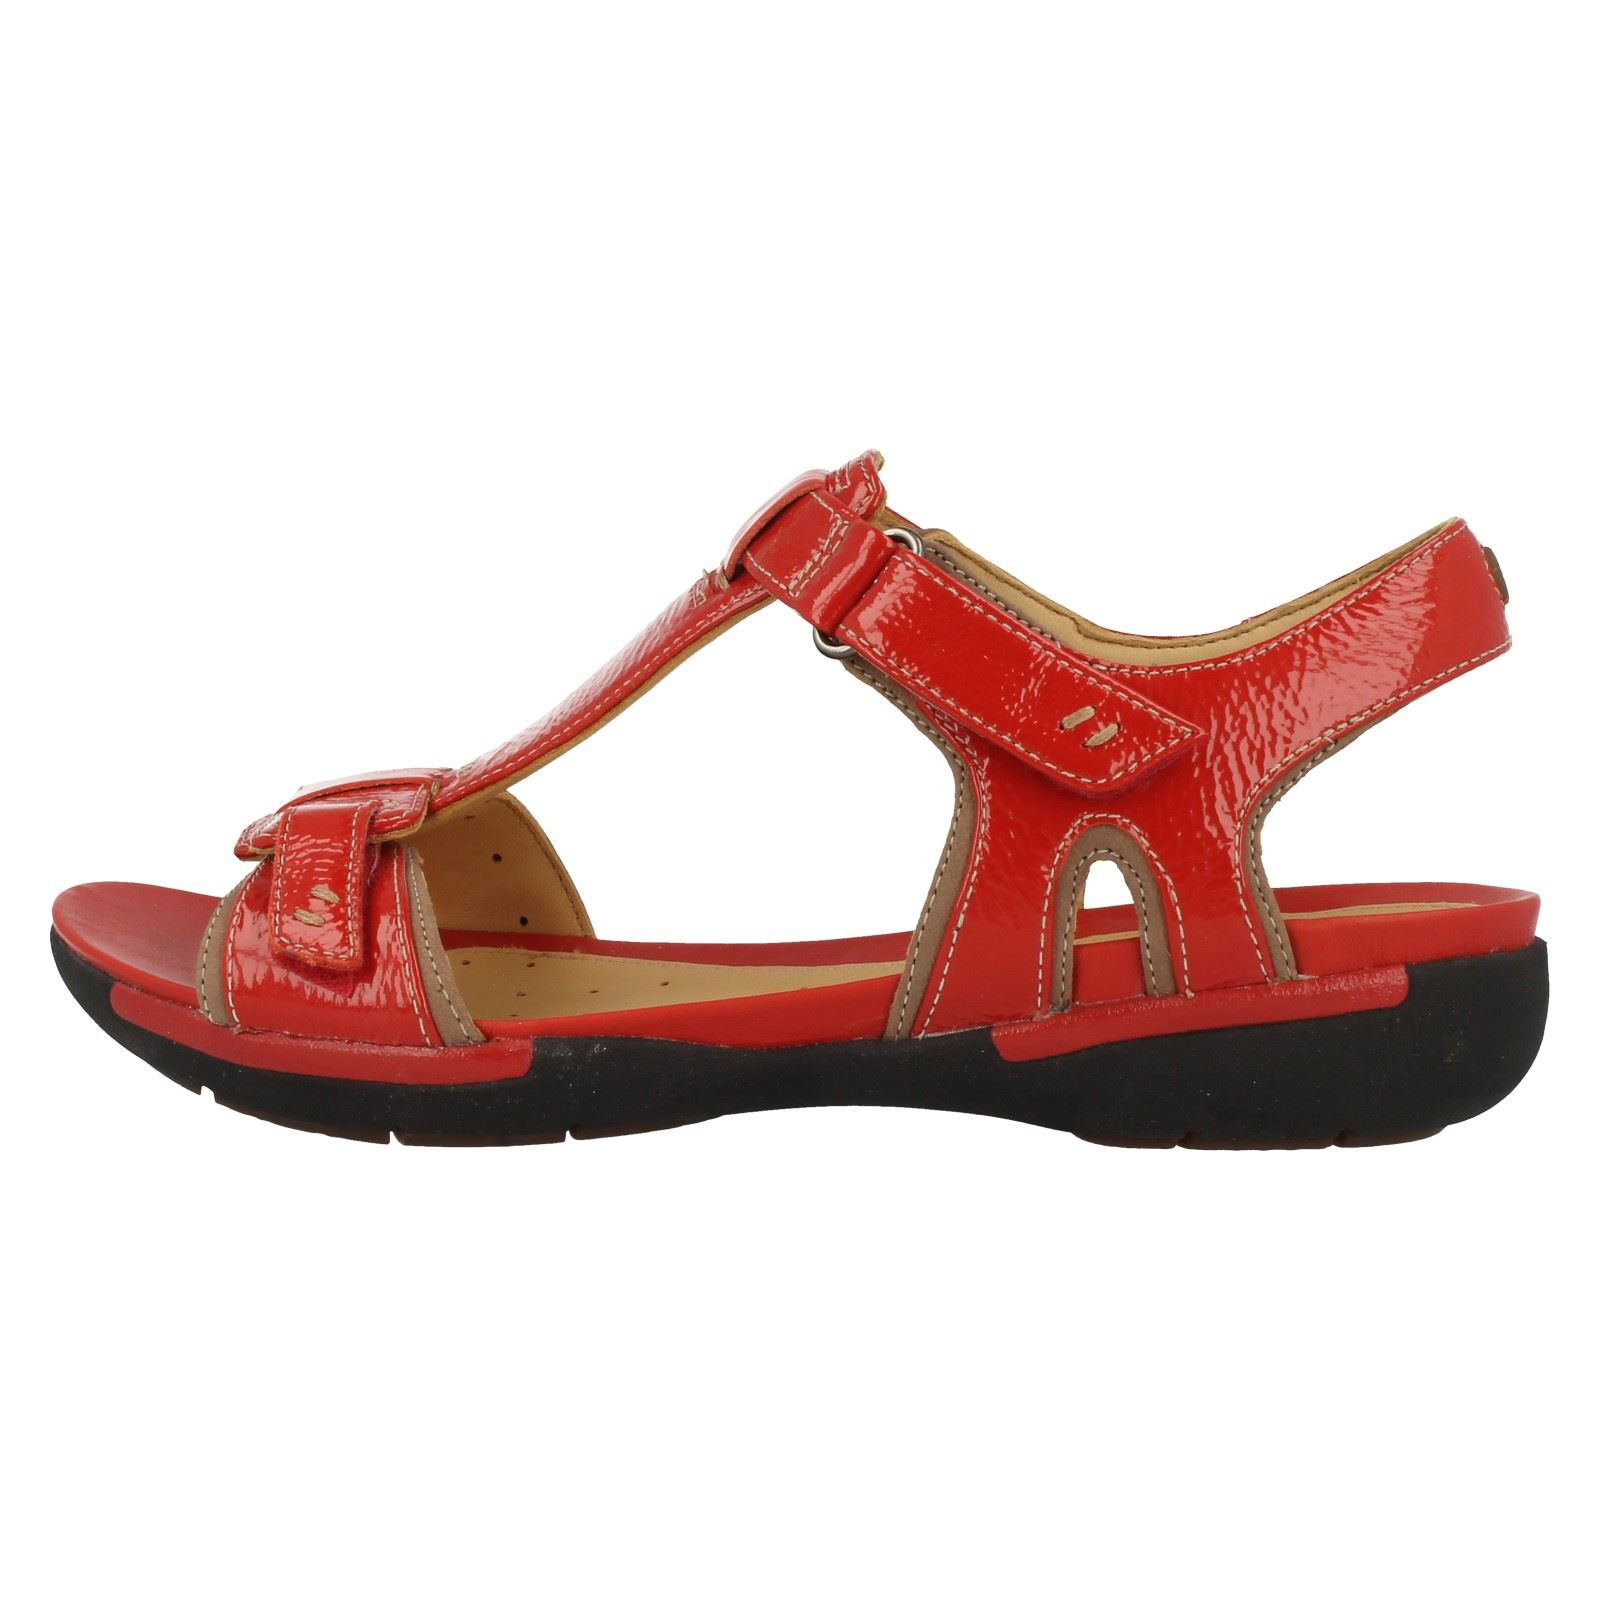 clarks sandals red